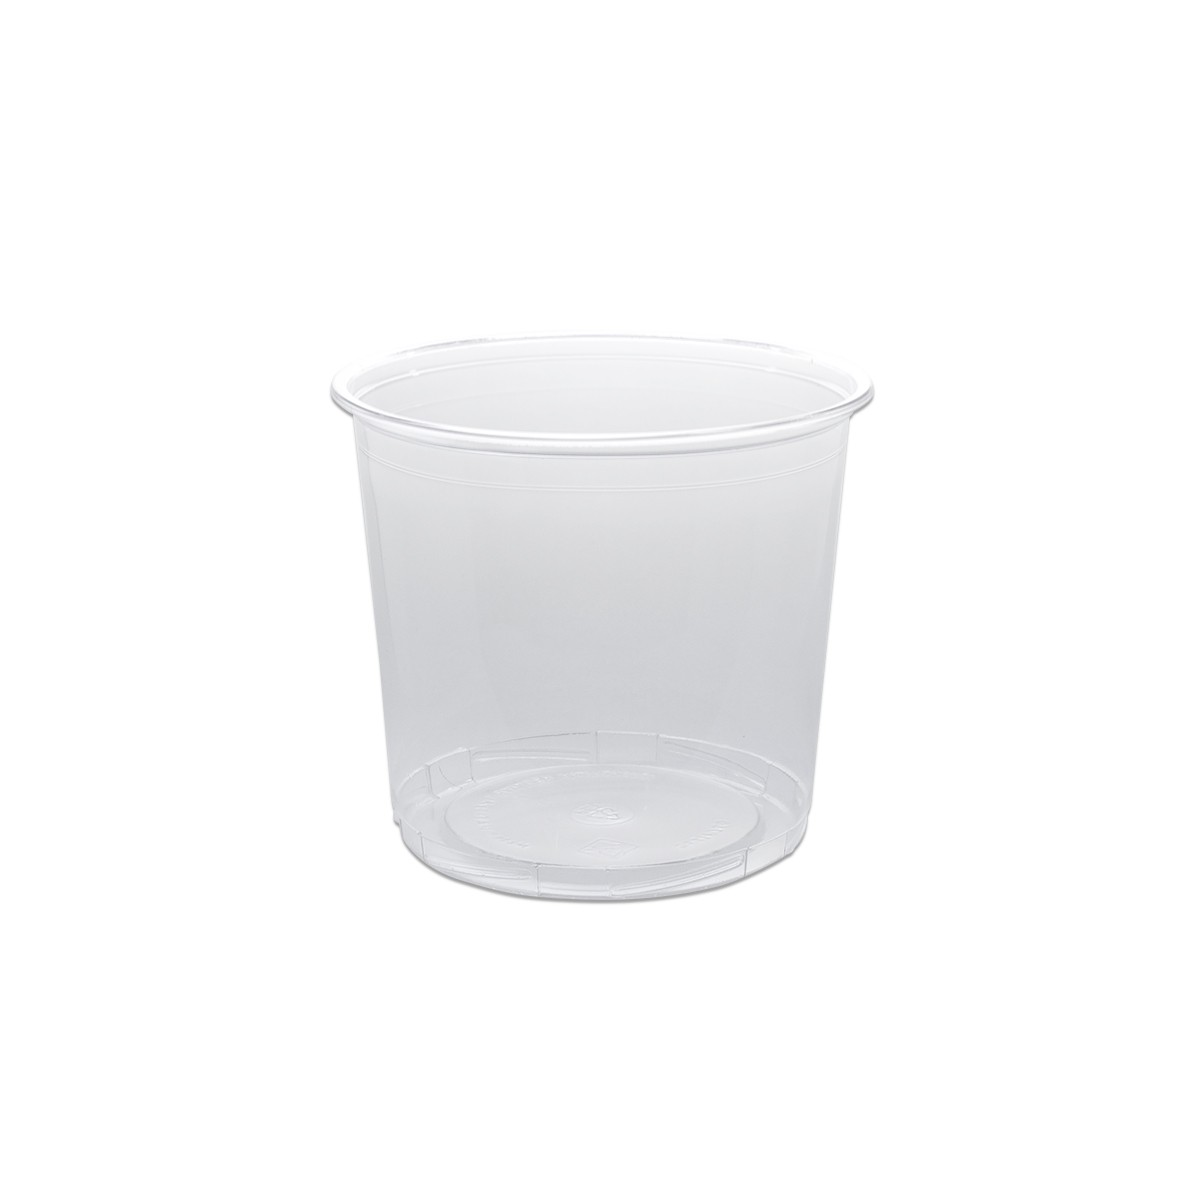 Towerpac Clear Round Container w/ Screw Base 750cc - PP | 100pcsx5pkts